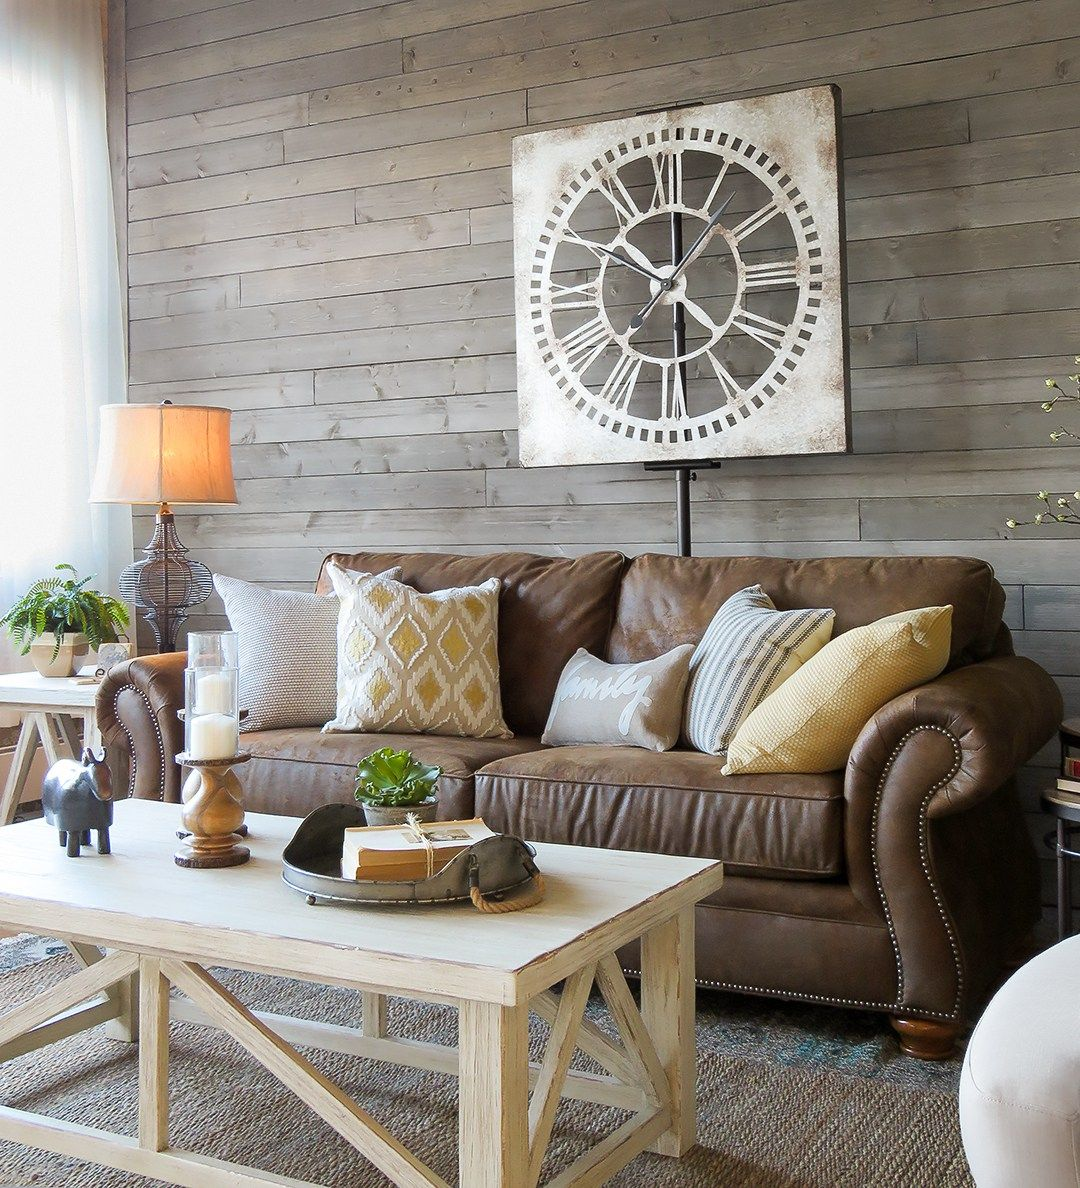 A Farmhouse Living Room That Will Make You Want A Brown Sofa Schneiderman S The Blog Design And Decorating Brown Living Room Decor Brown Couch Living Room Brown Sofa Living Room